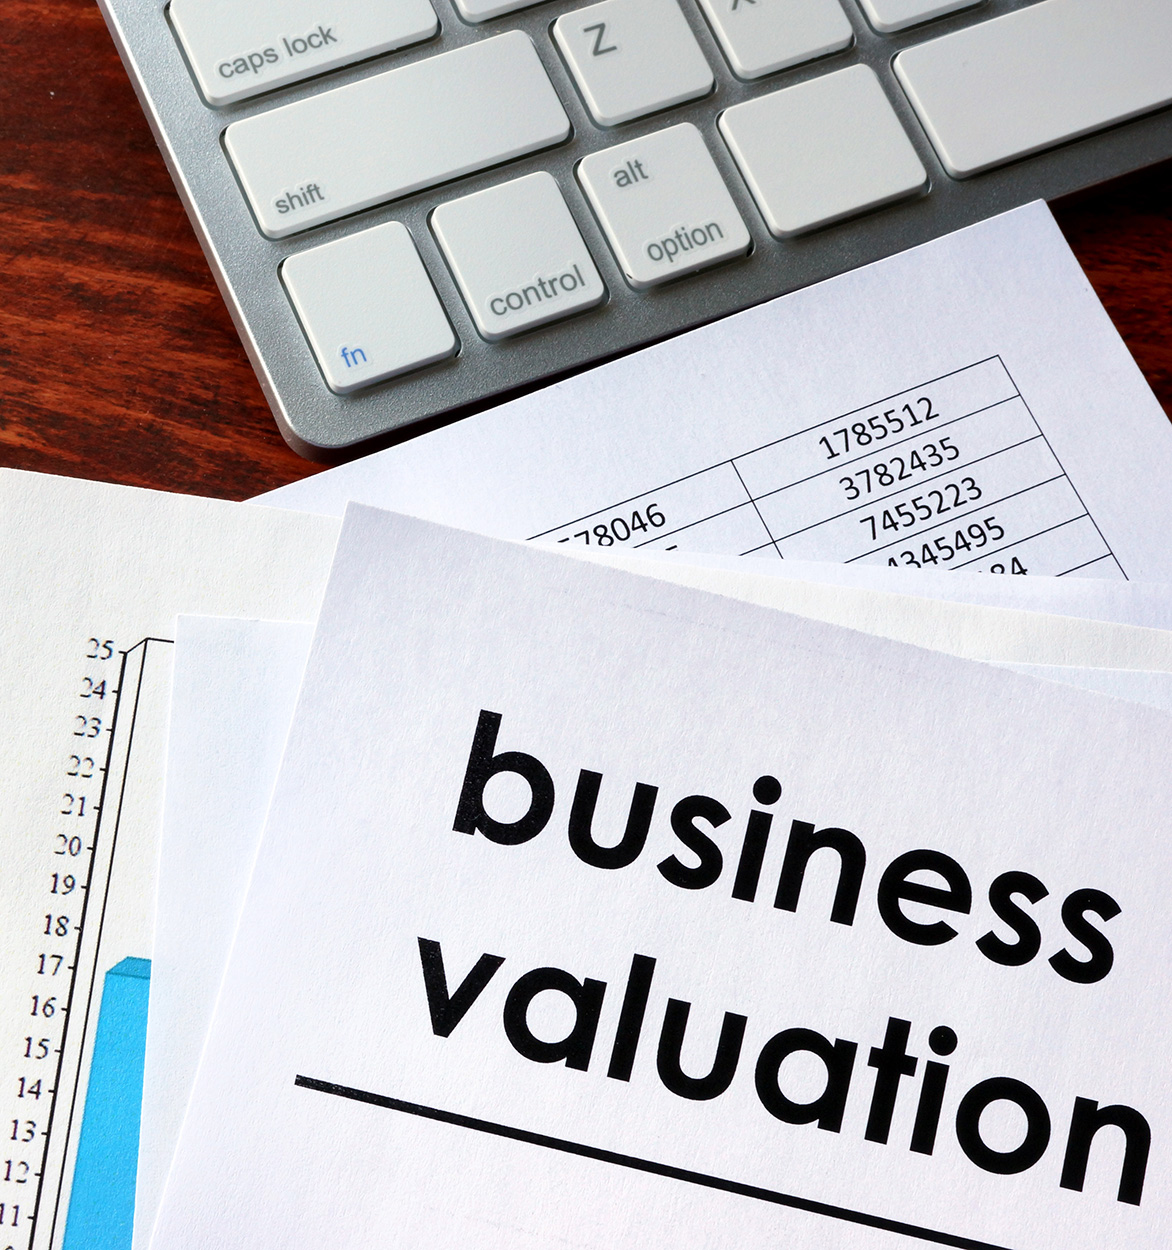 Business valuation - Tax & Advisory Services